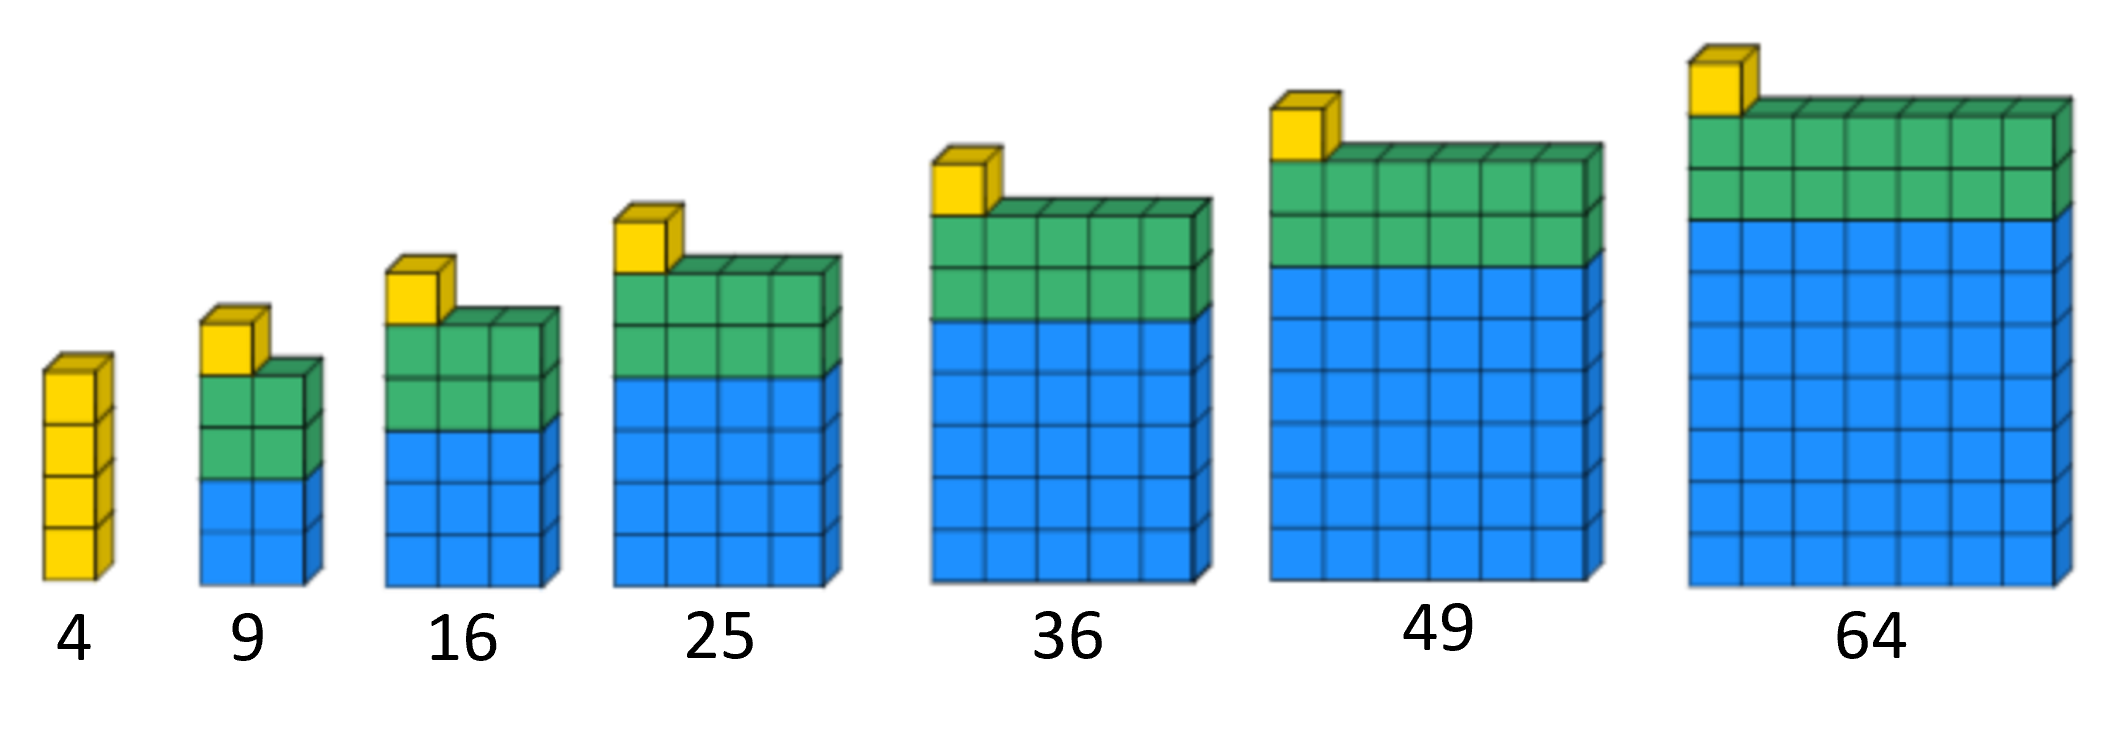 Dienes blocks in different bases can be found on Mathsbot.com - manipulatives.  The blocks represent the geometrical structure of the sequence.  Many students find it easier to make the jump to generalisation when they can see the structure.  1 square   2 lines   1 unit  becomes n^2   2n   1